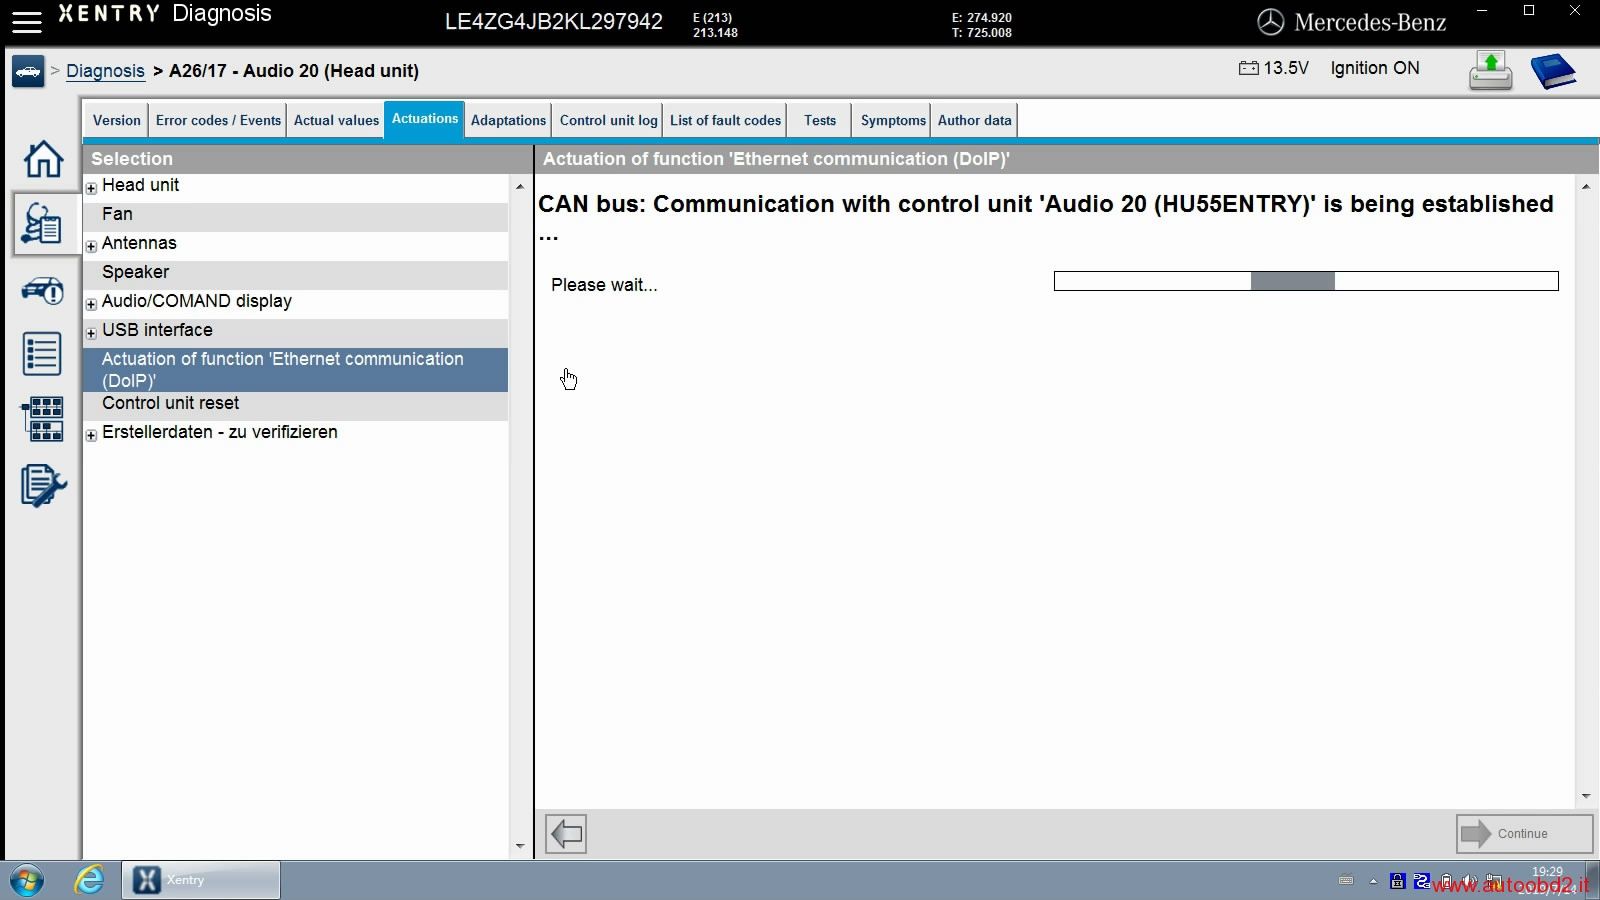 sdc4-plus-xentry-test-actuation-of-function-ethernet-communication-doip-16